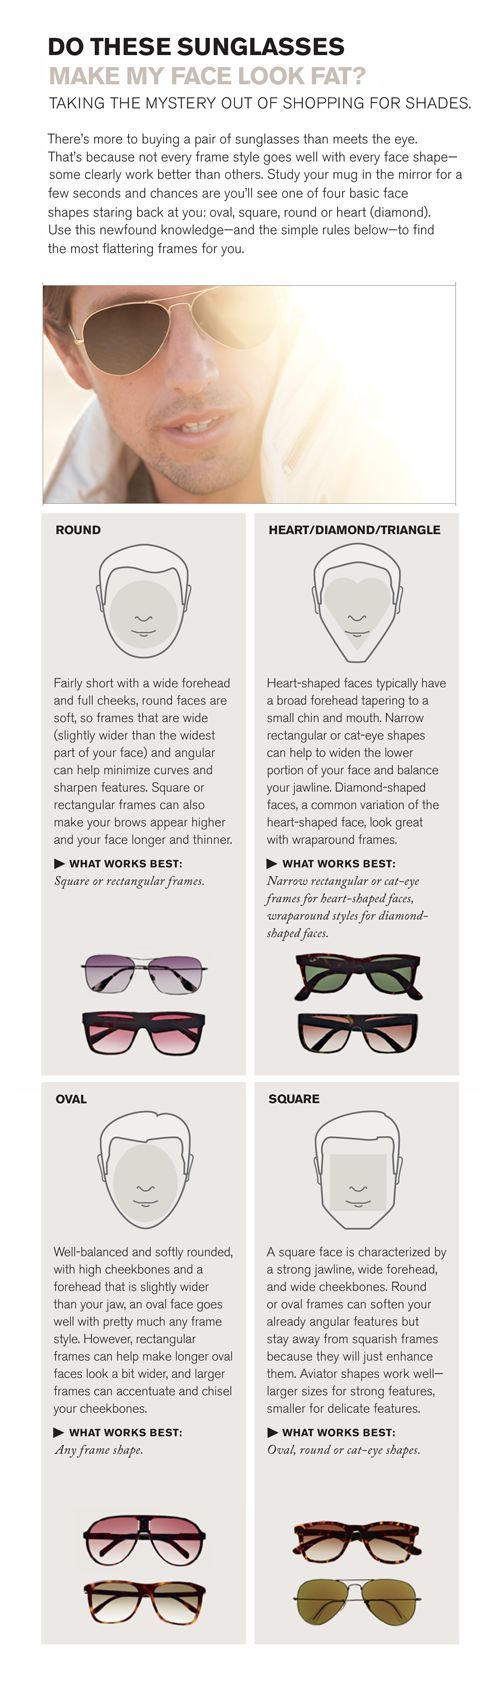 Female Celebrity Face Shapes & Sunglasses - Sunglasses ...